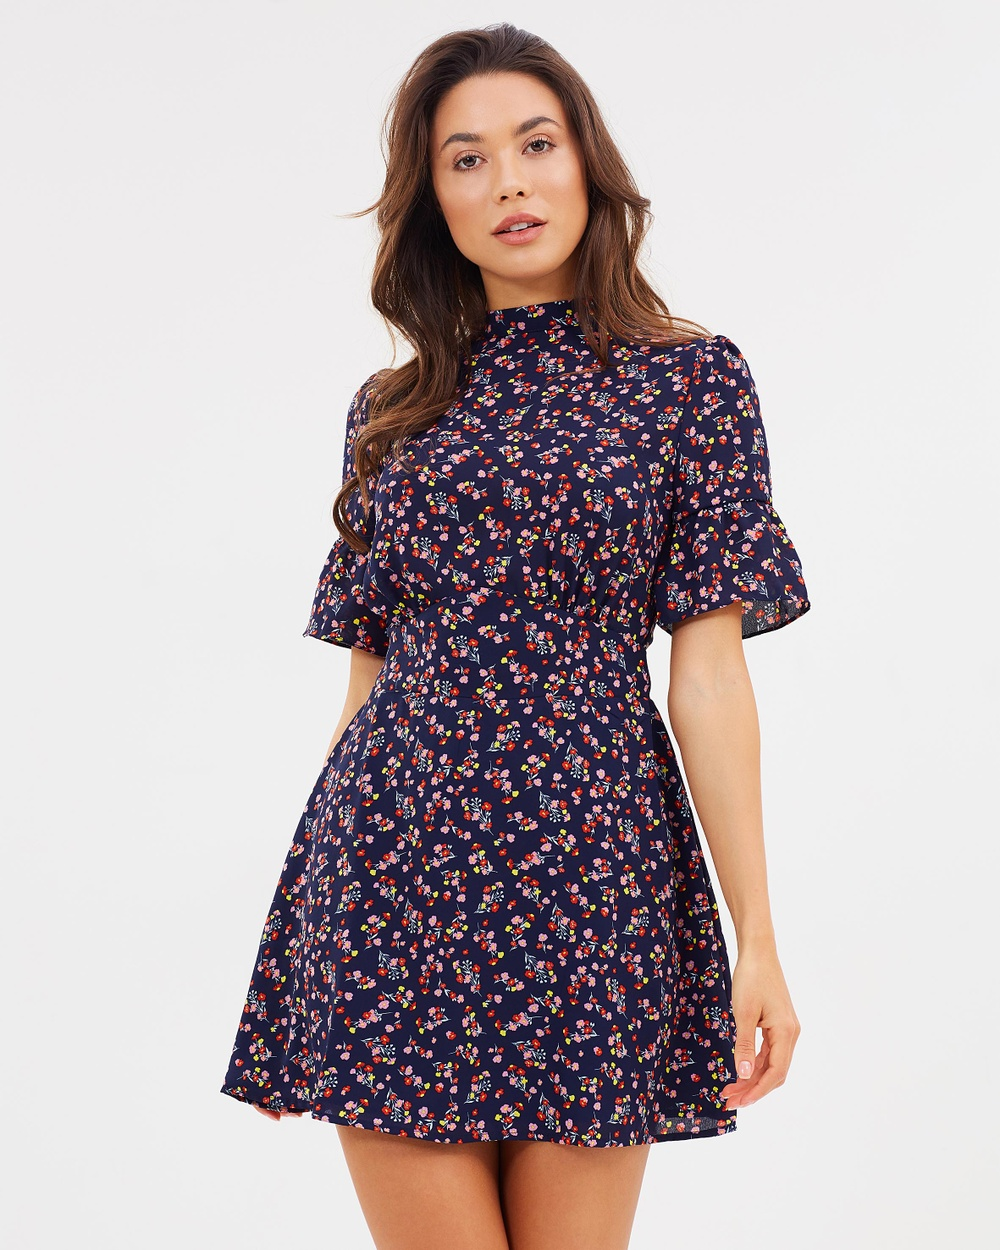 Atmos & Here ICONIC EXCLUSIVE Kendra High Neck Dress Printed Dresses Pocket Full Of Posies ICONIC EXCLUSIVE Kendra High Neck Dress